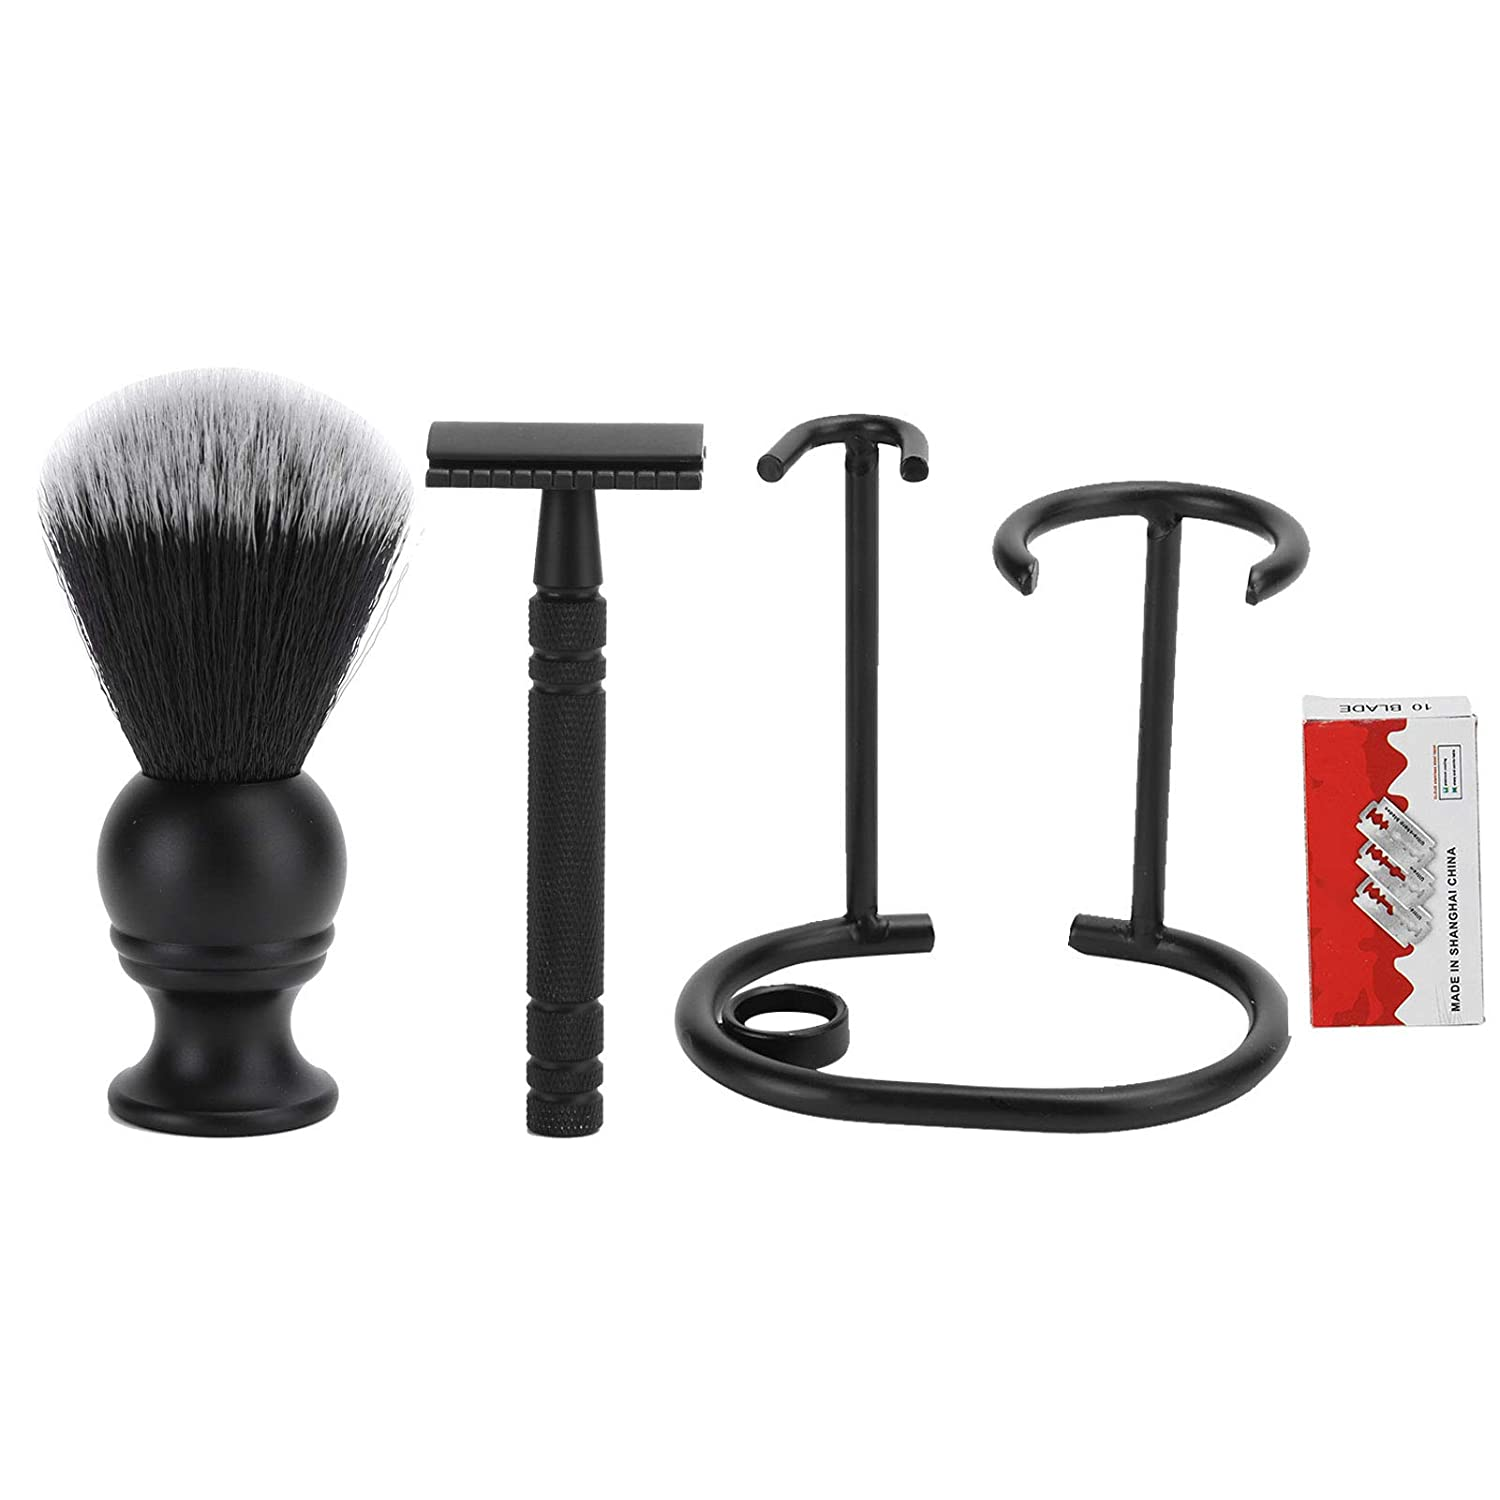 Hair Shaving Brush Some reservation And Stand Set Life Service wholesale Long